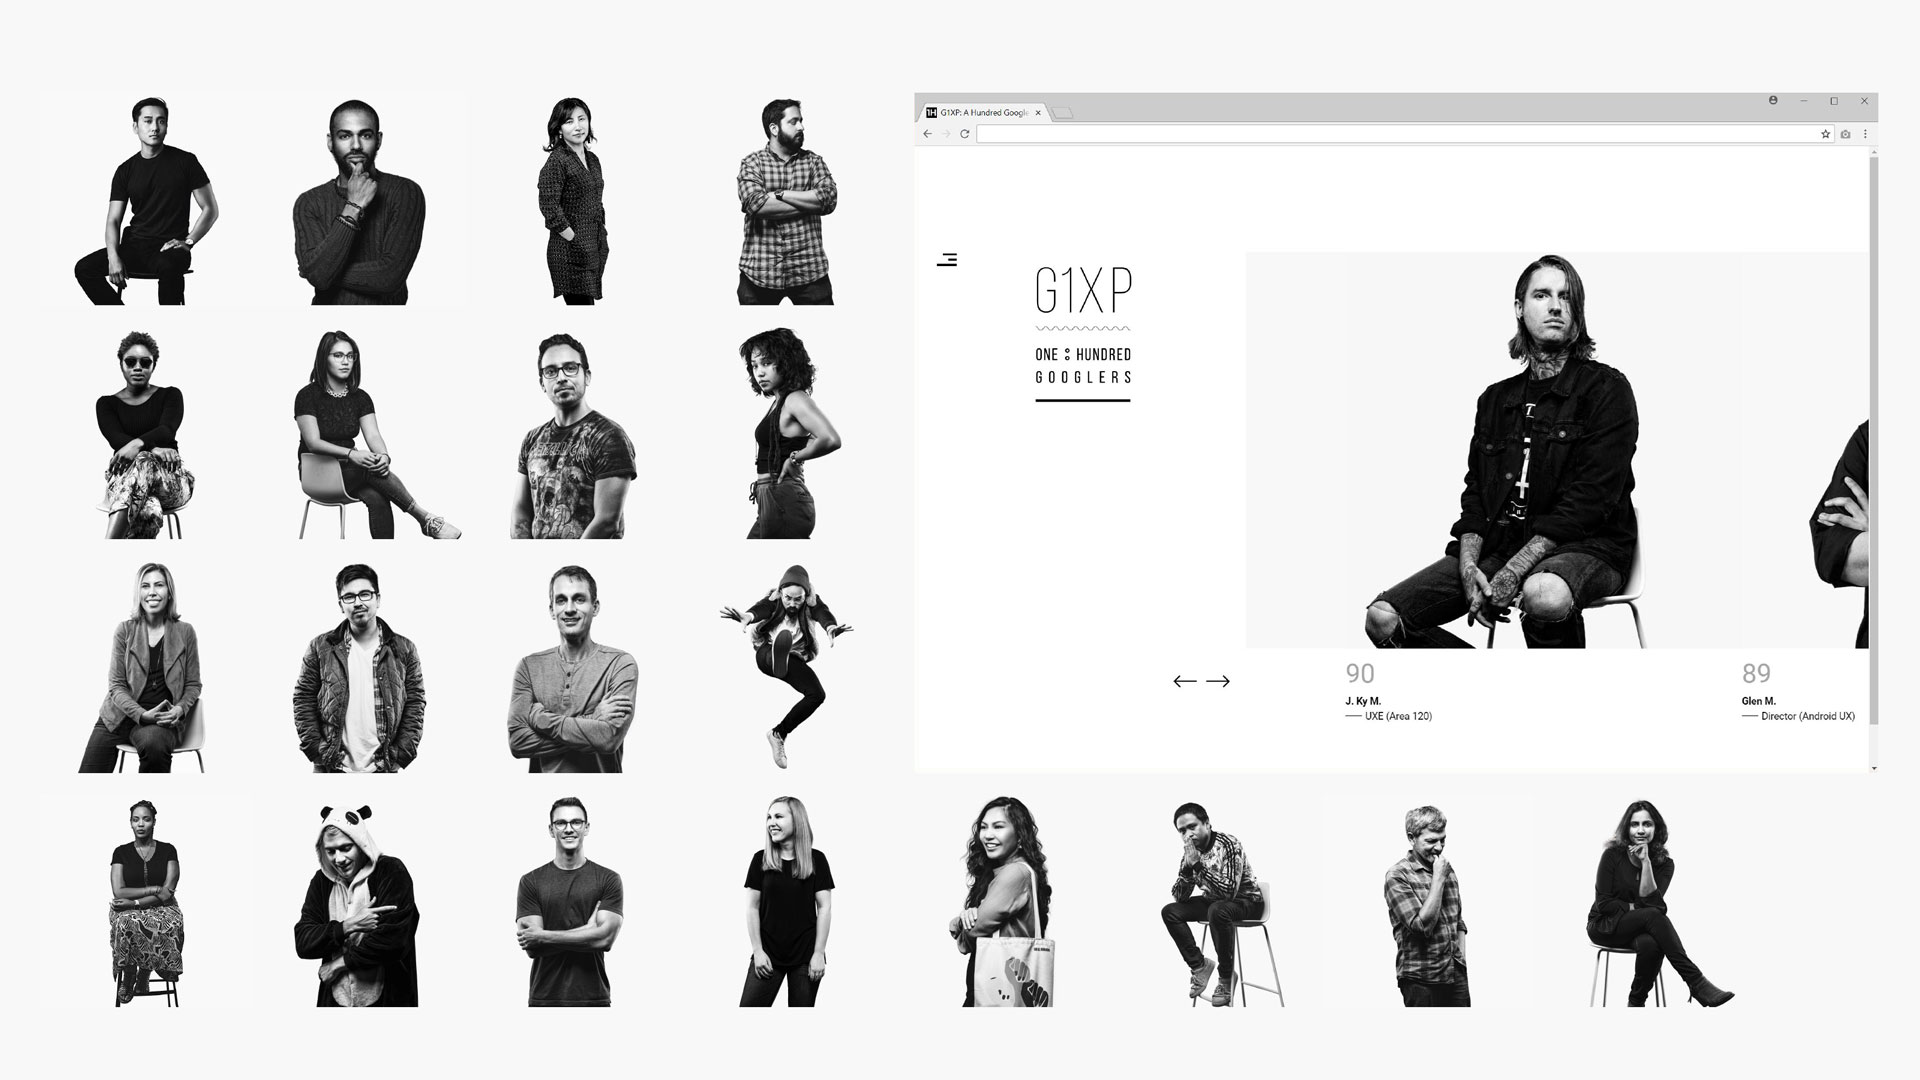 photography website 100 googlers series of black and white photos